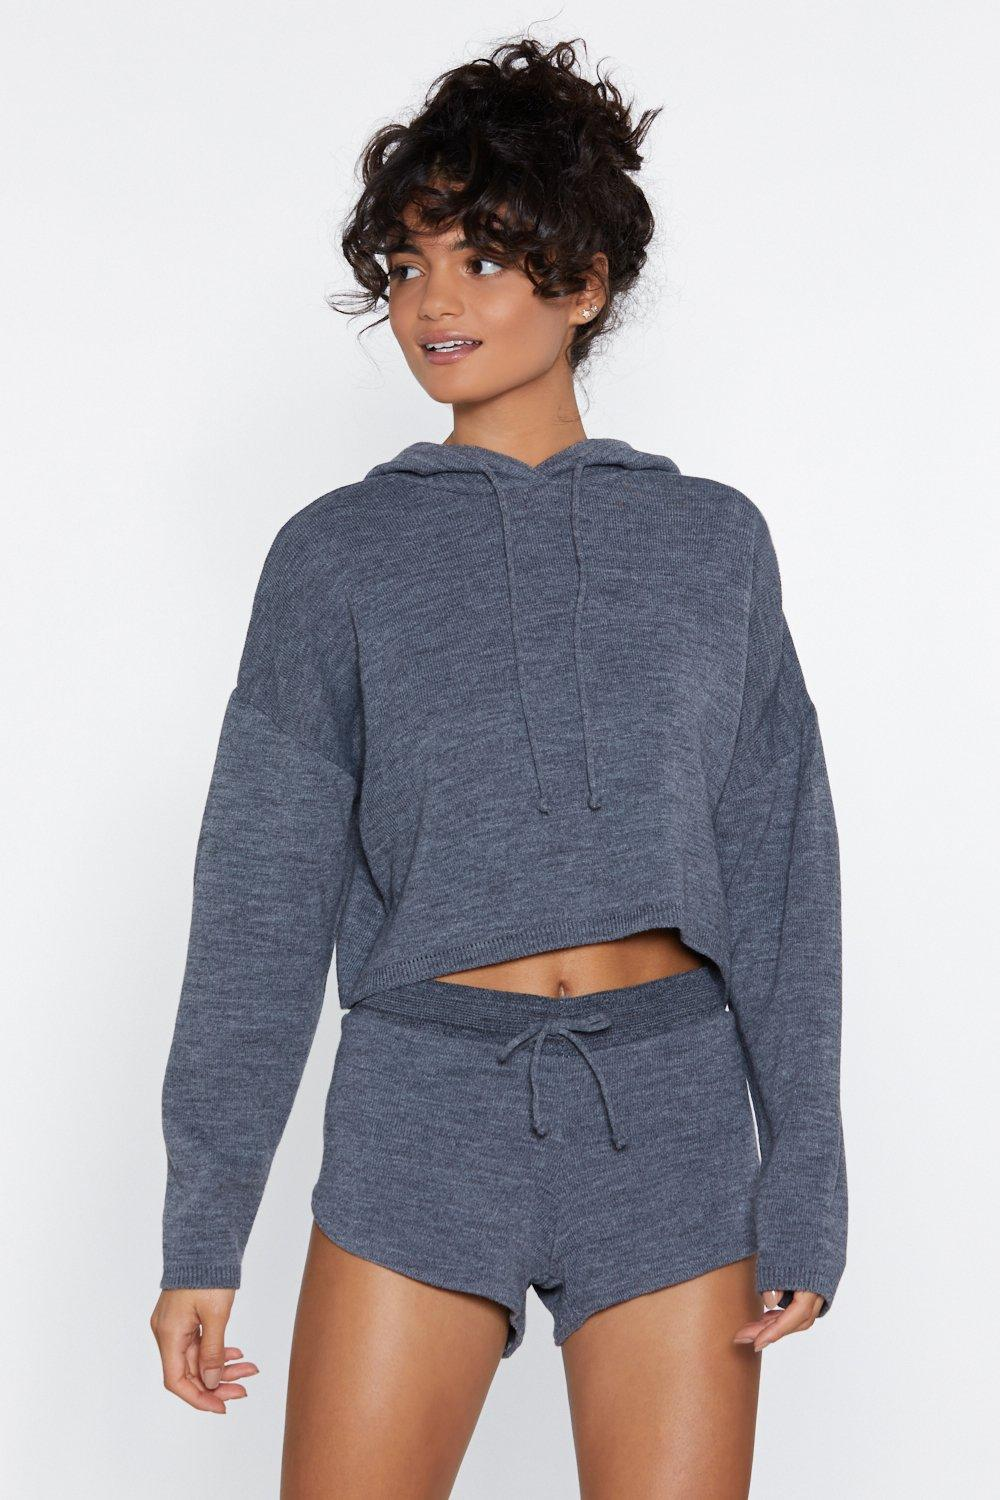 6a7166160 Warm Heart Sweater and Shorts Set | Shop Clothes at Nasty Gal!